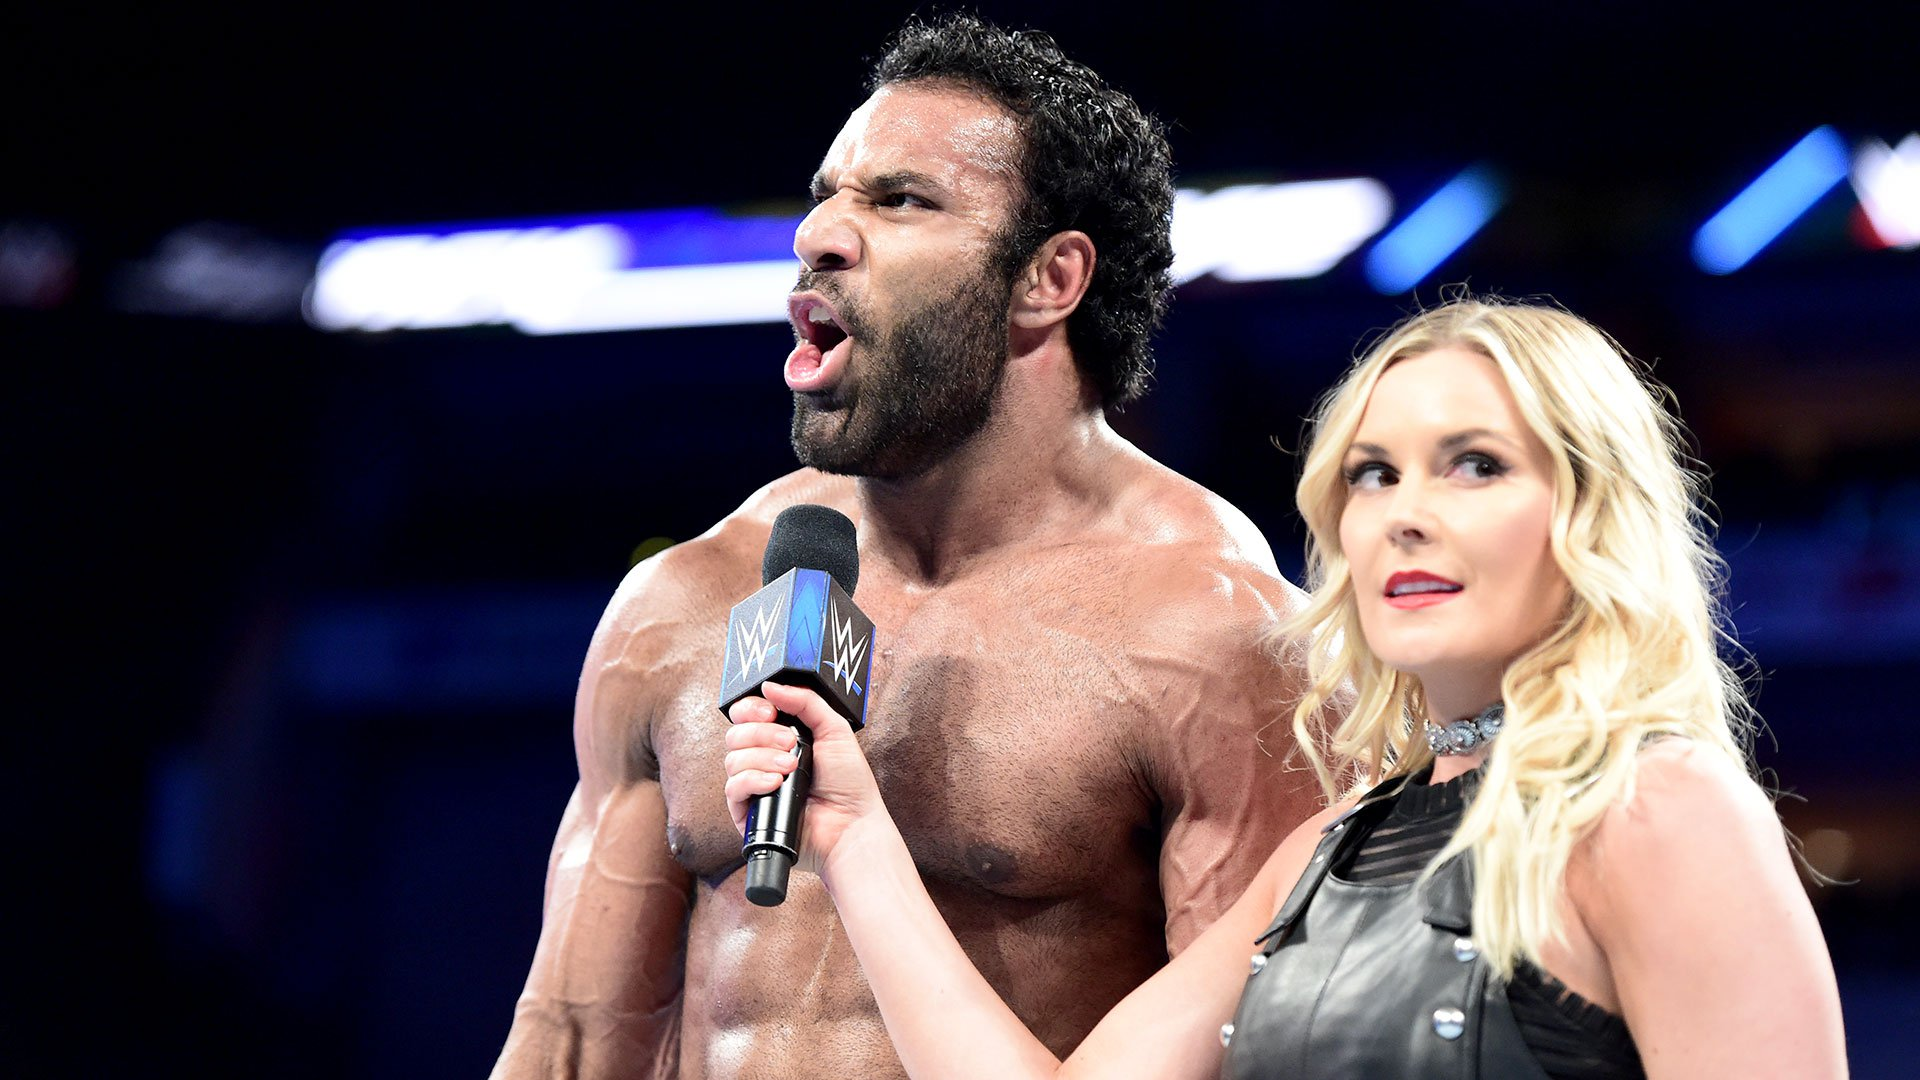 Mahal chastises the WWE Universe for not accepting him...